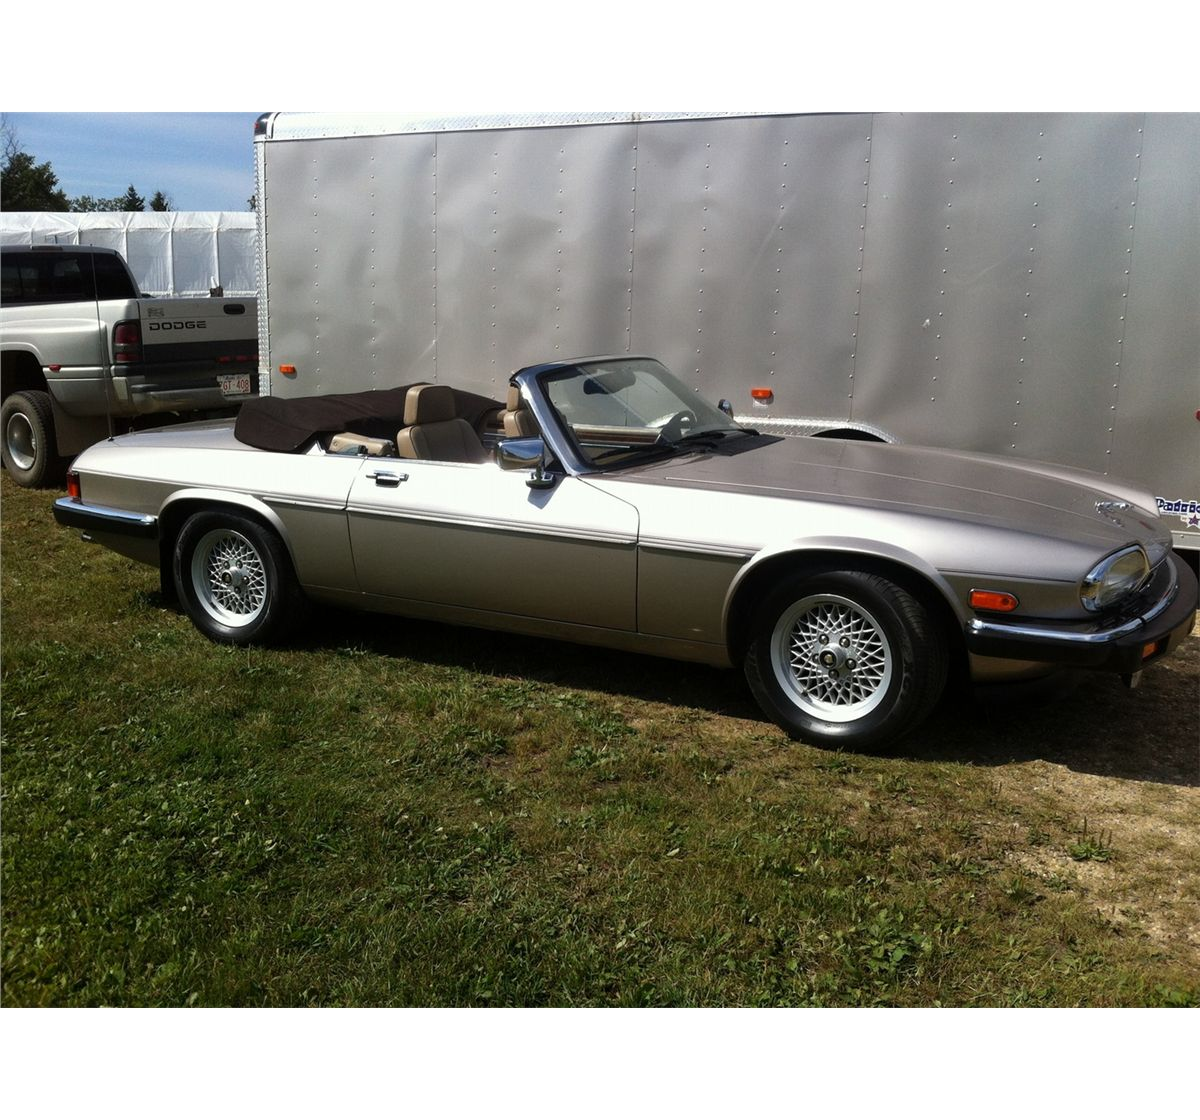 Price Of Jaguar Convertible: NO RESERVE! 1986 JAGUAR XJS CONVERTIBLE